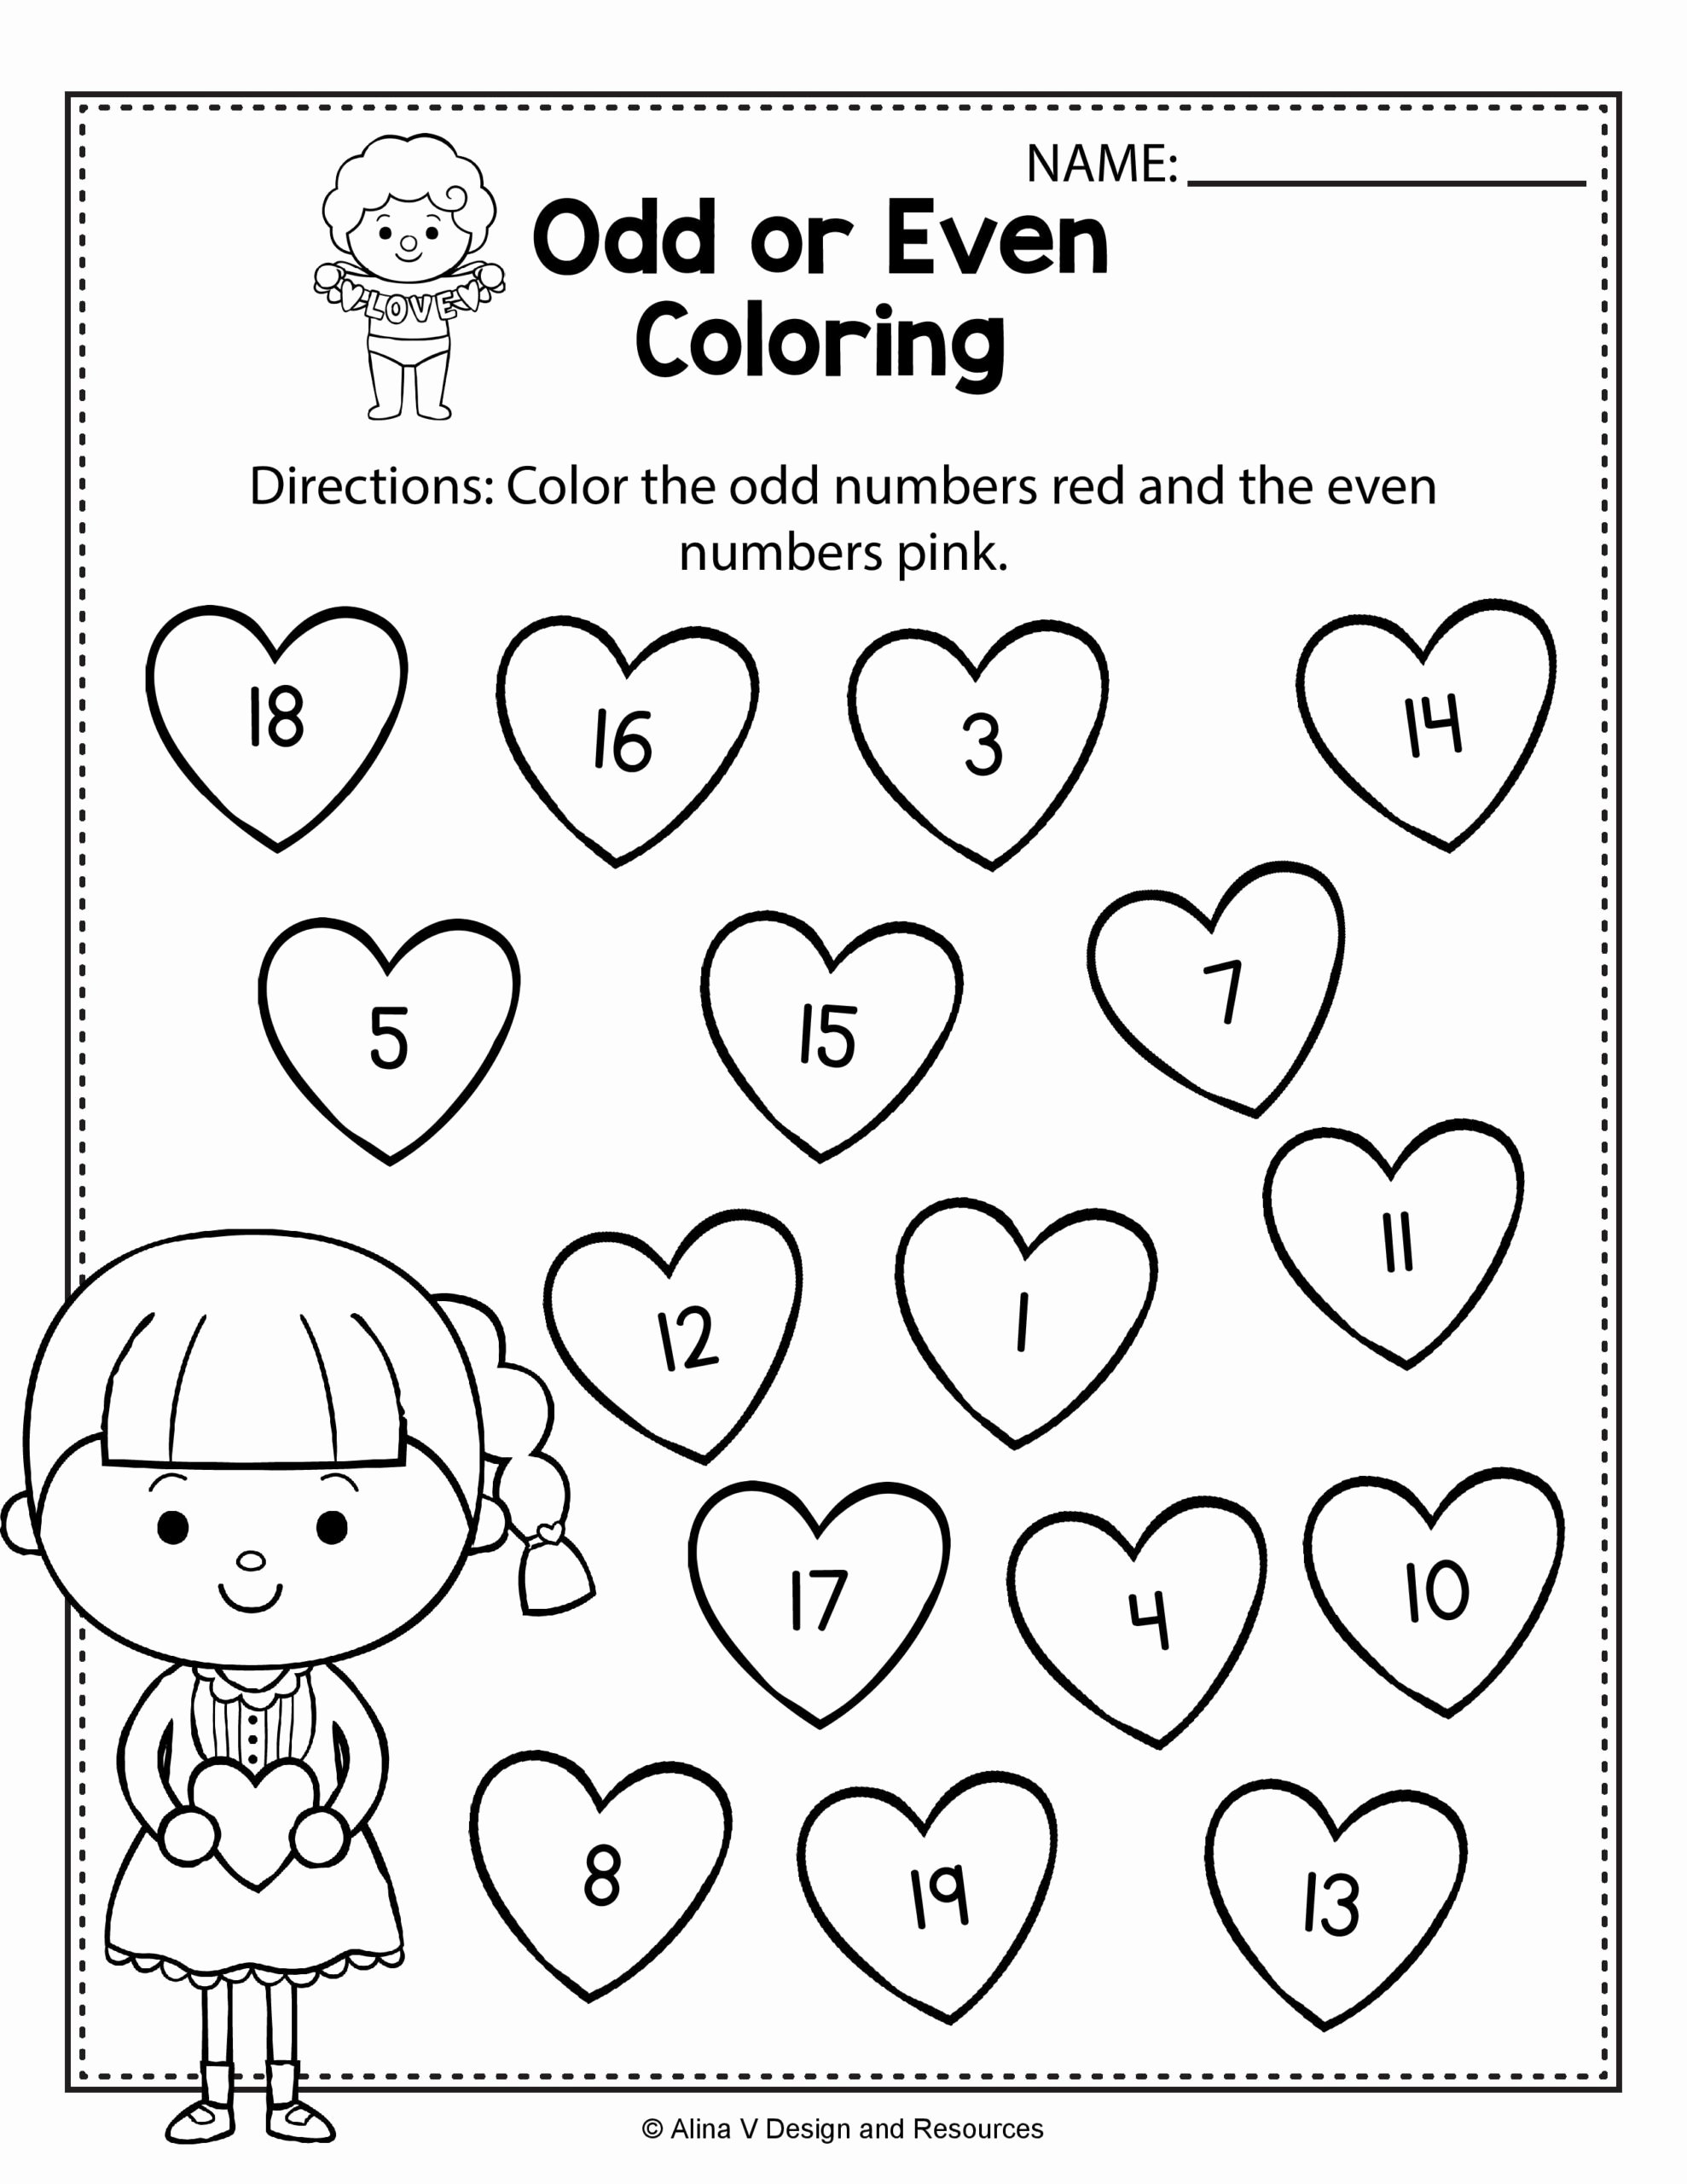 English Worksheets for Preschoolers top Worksheets Printable Graph Paper Squares Per Inch 4th